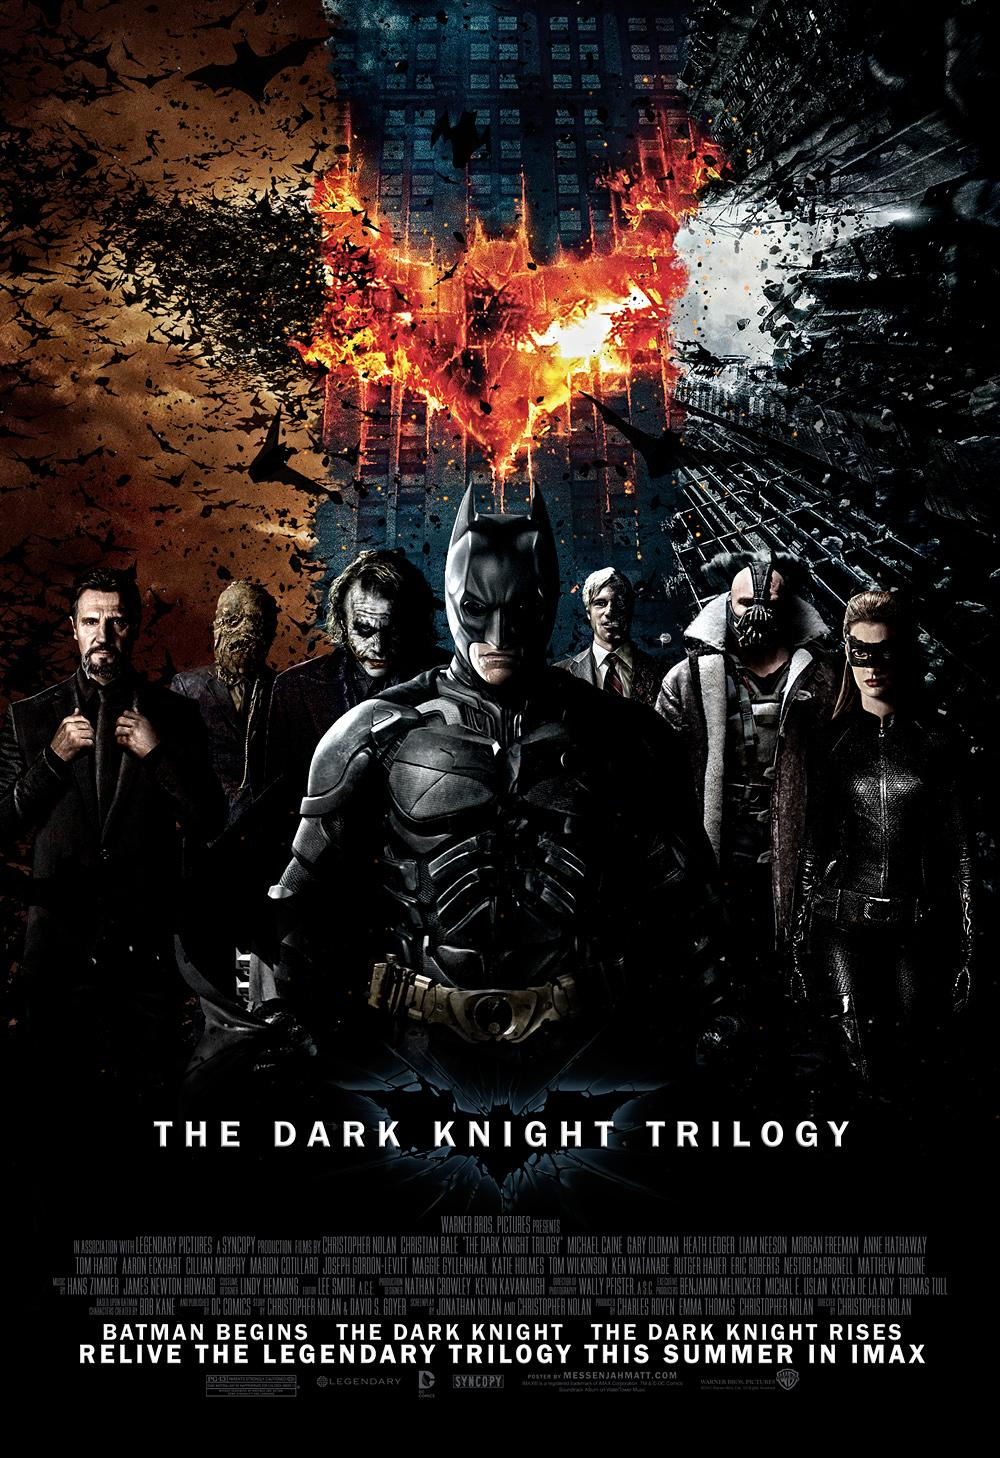 Check Out This Fan-Made Dark Knight Trilogy Poster